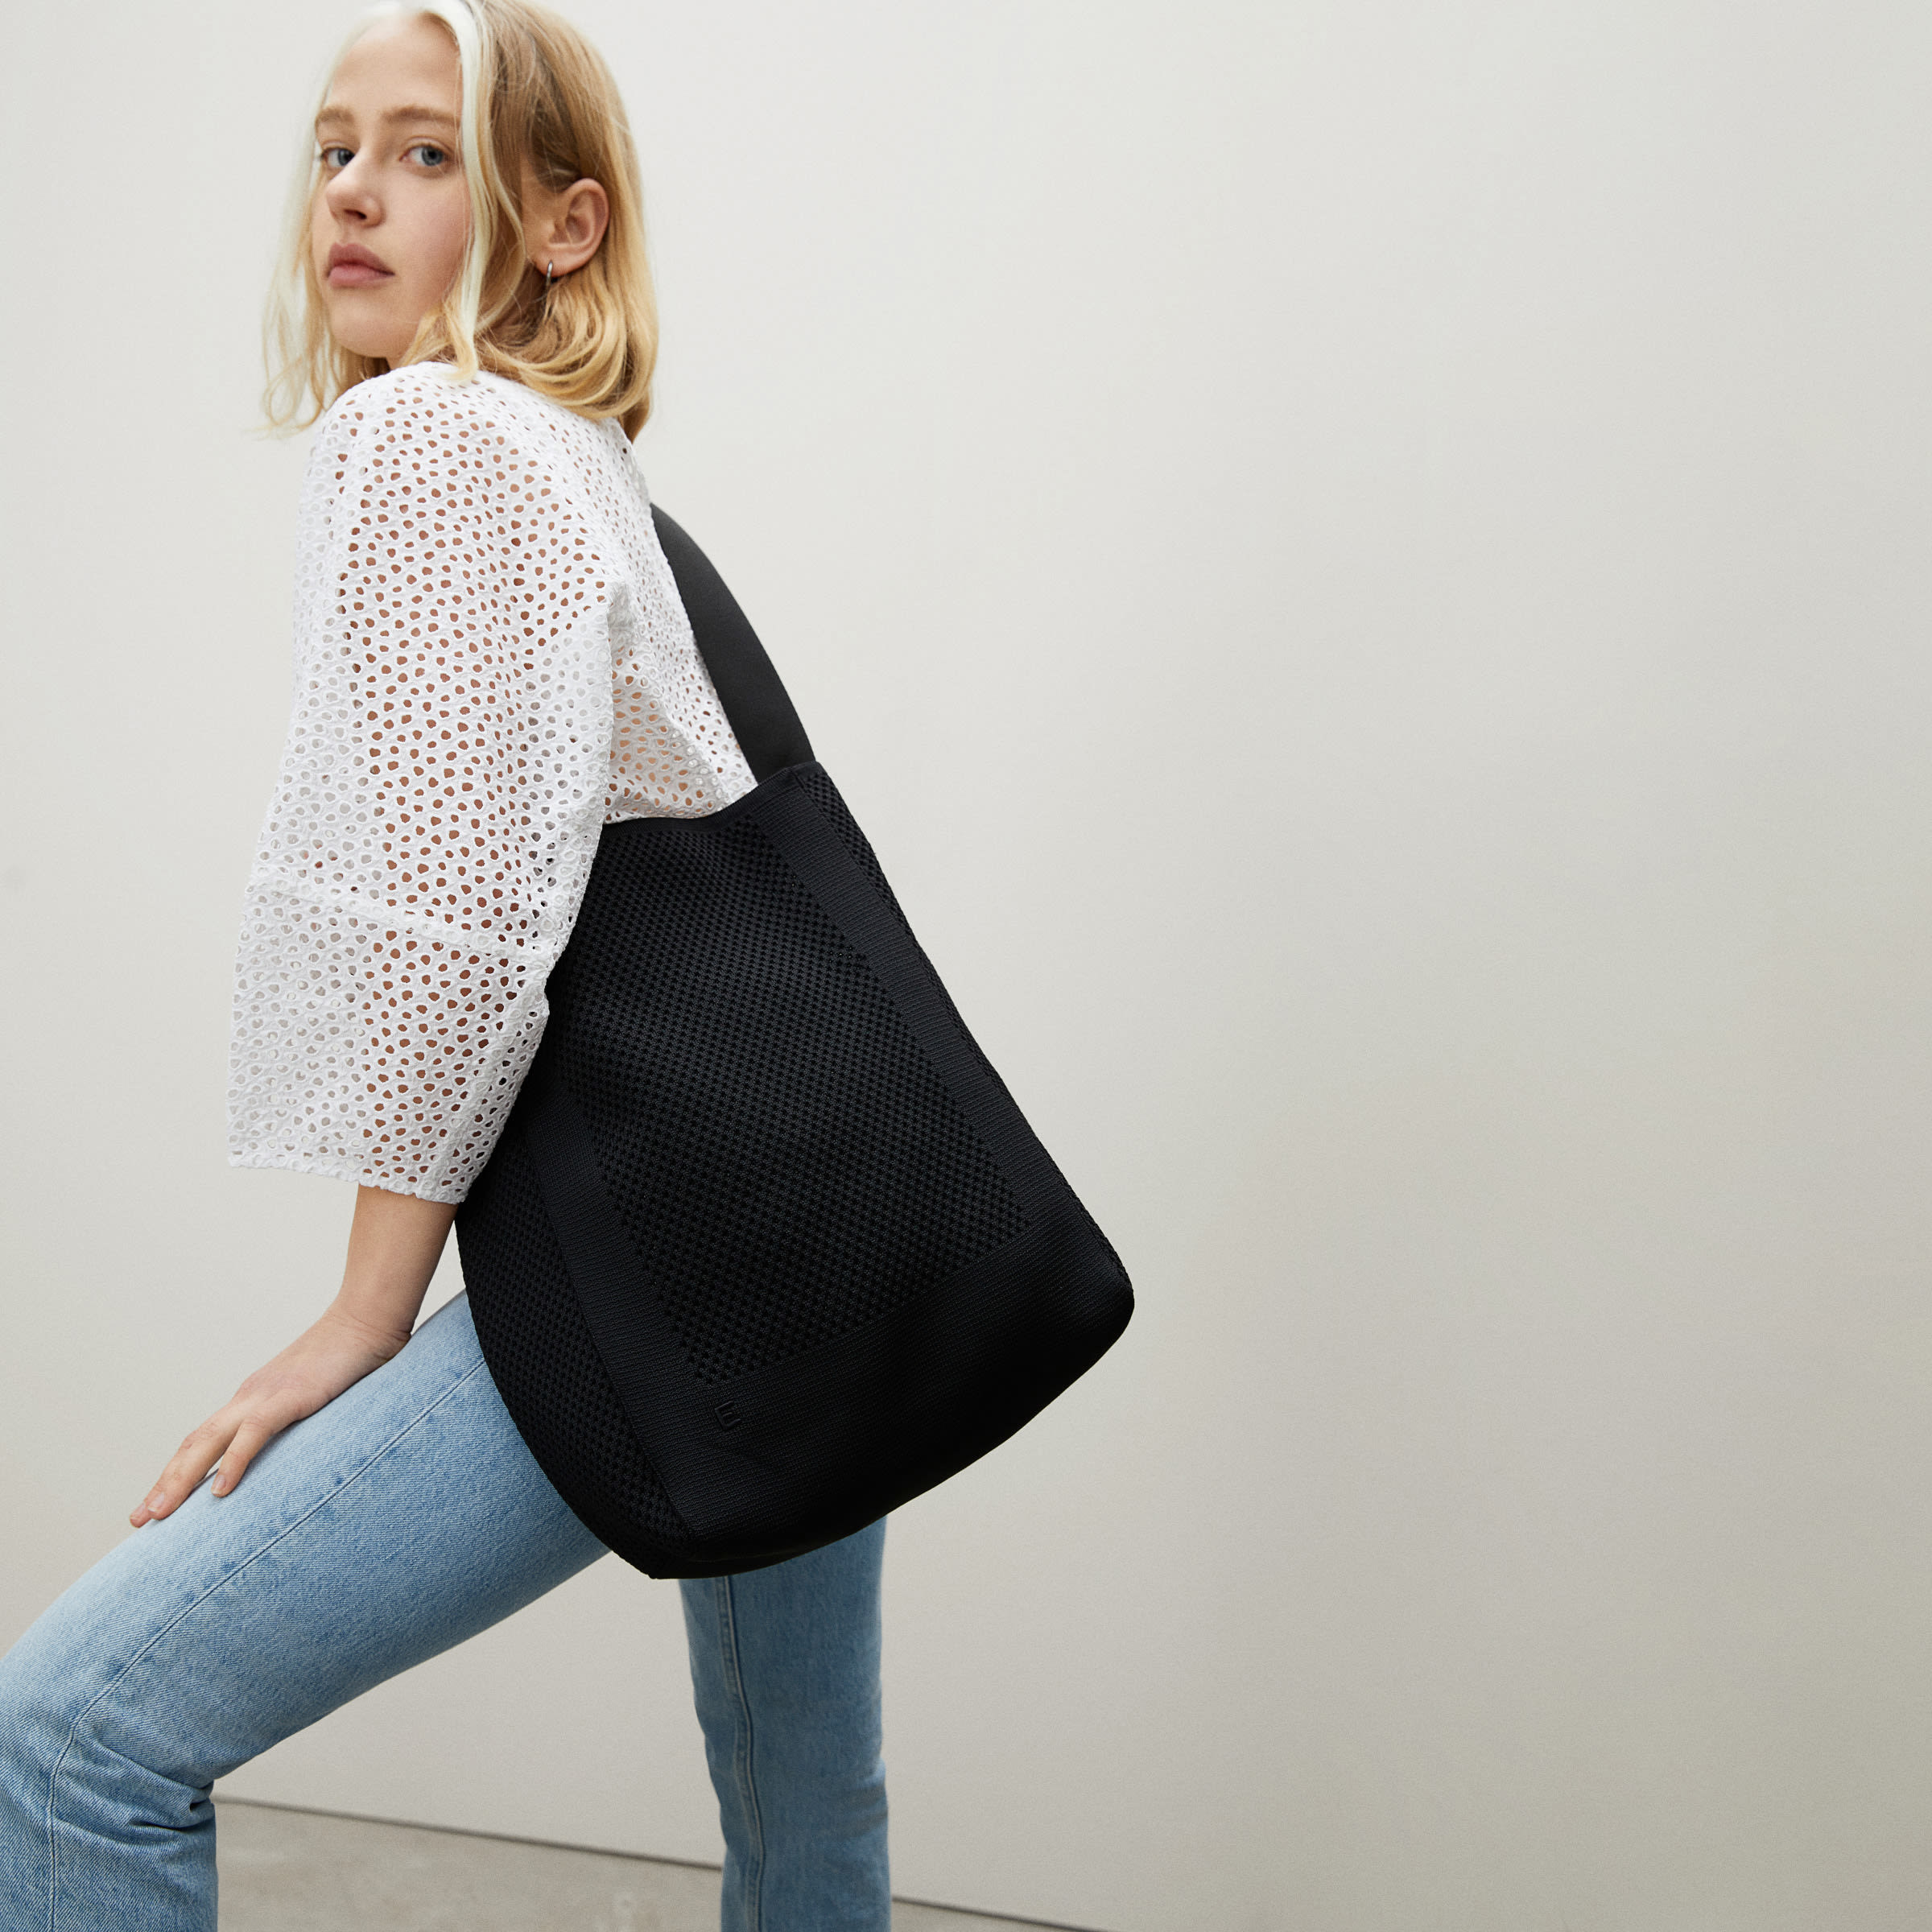 a model holding the black oversized tote bag